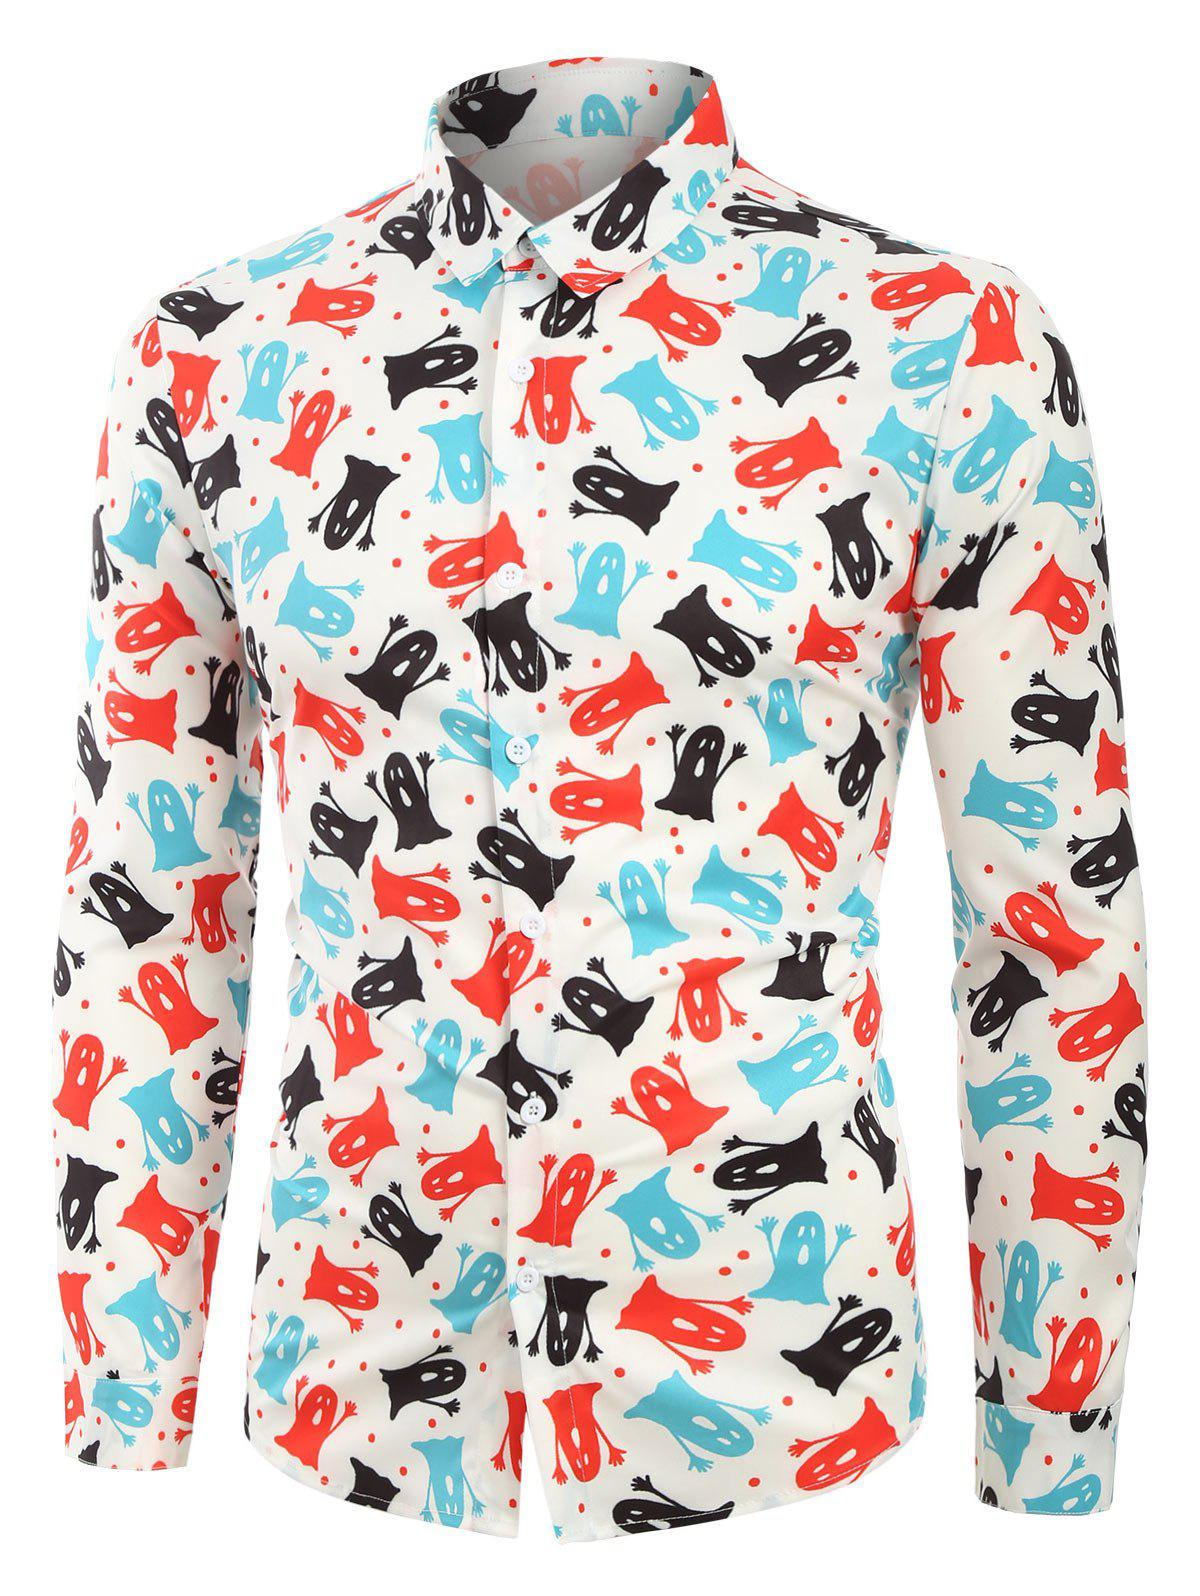 Unique Cartoon Ghost Print Long Sleeves Shirt